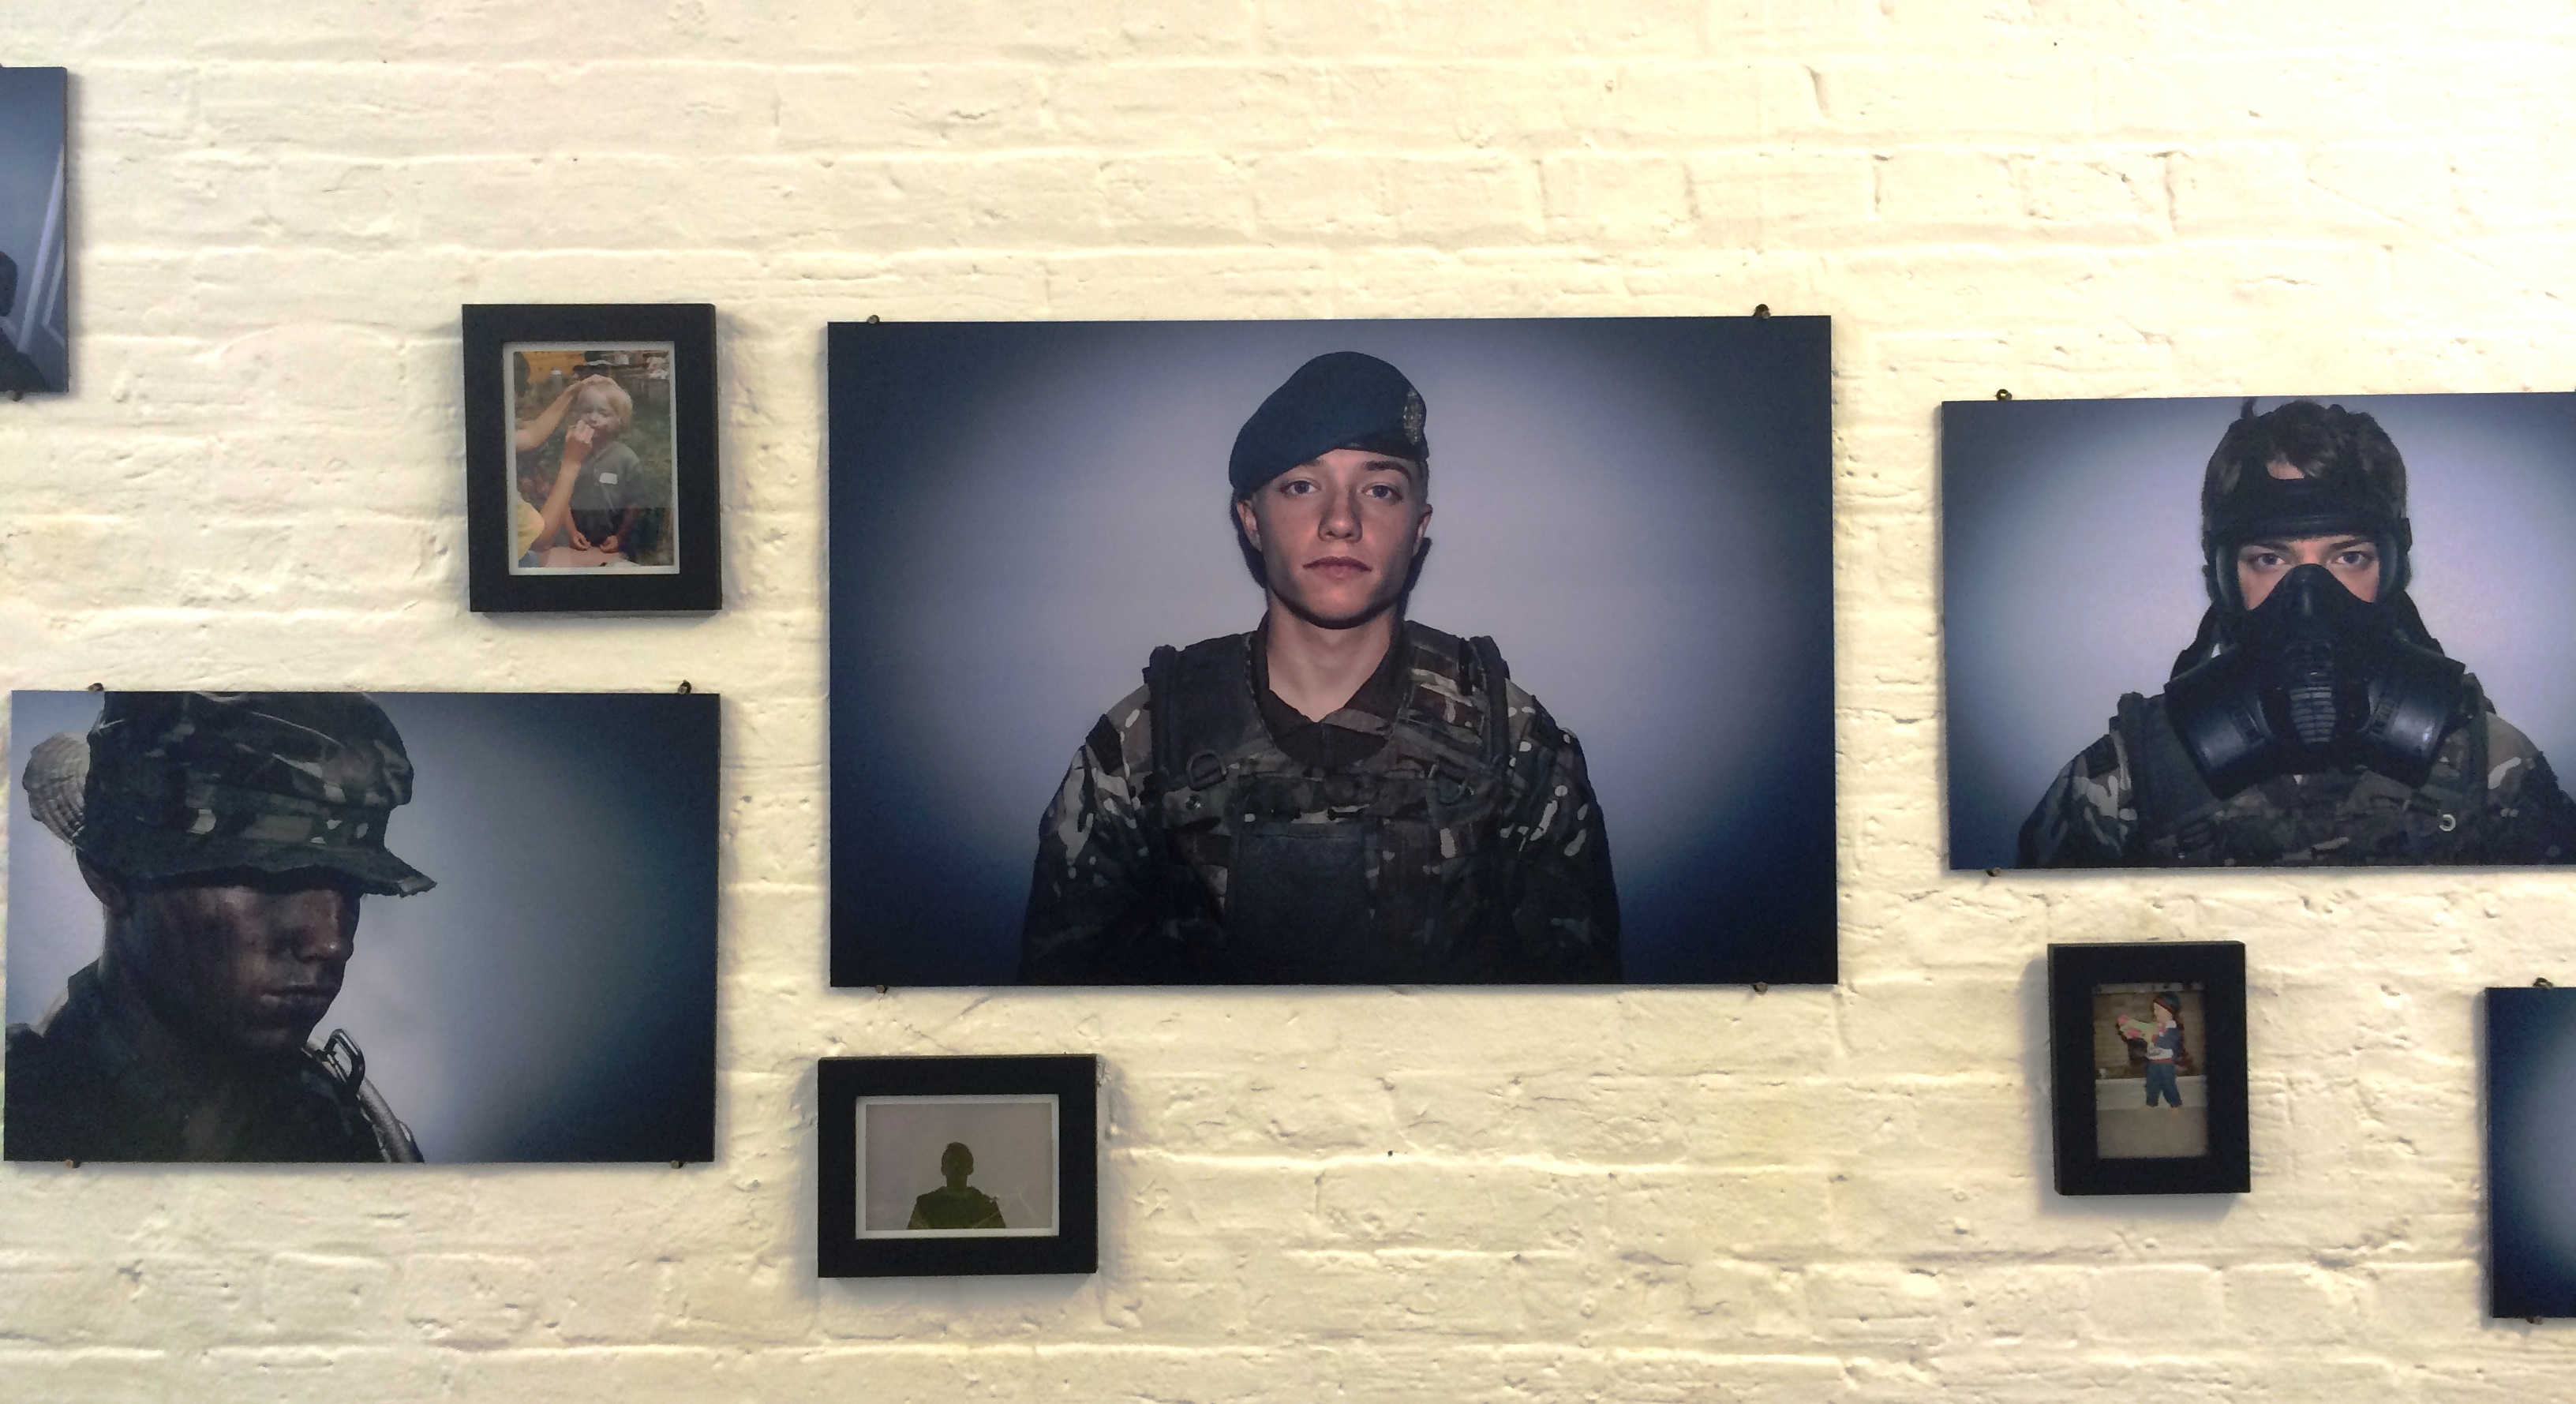 Dreams & Aspirations - A Soldier's Journey